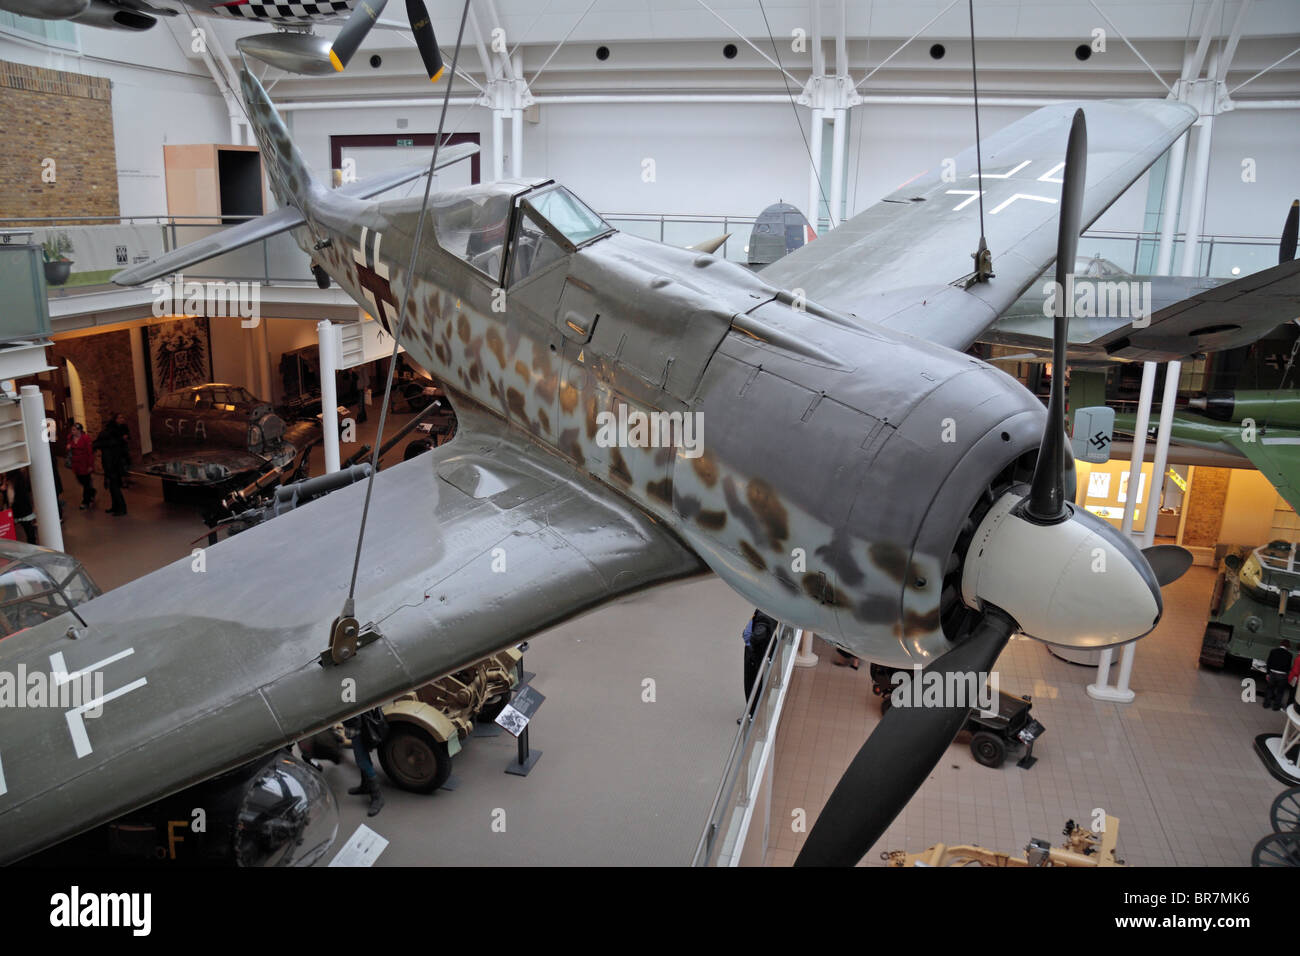 The cockpit of the German Focke-Wulf  fw190 hanging above the main hall in the Imperial War Museum, London, UK. - Stock Image